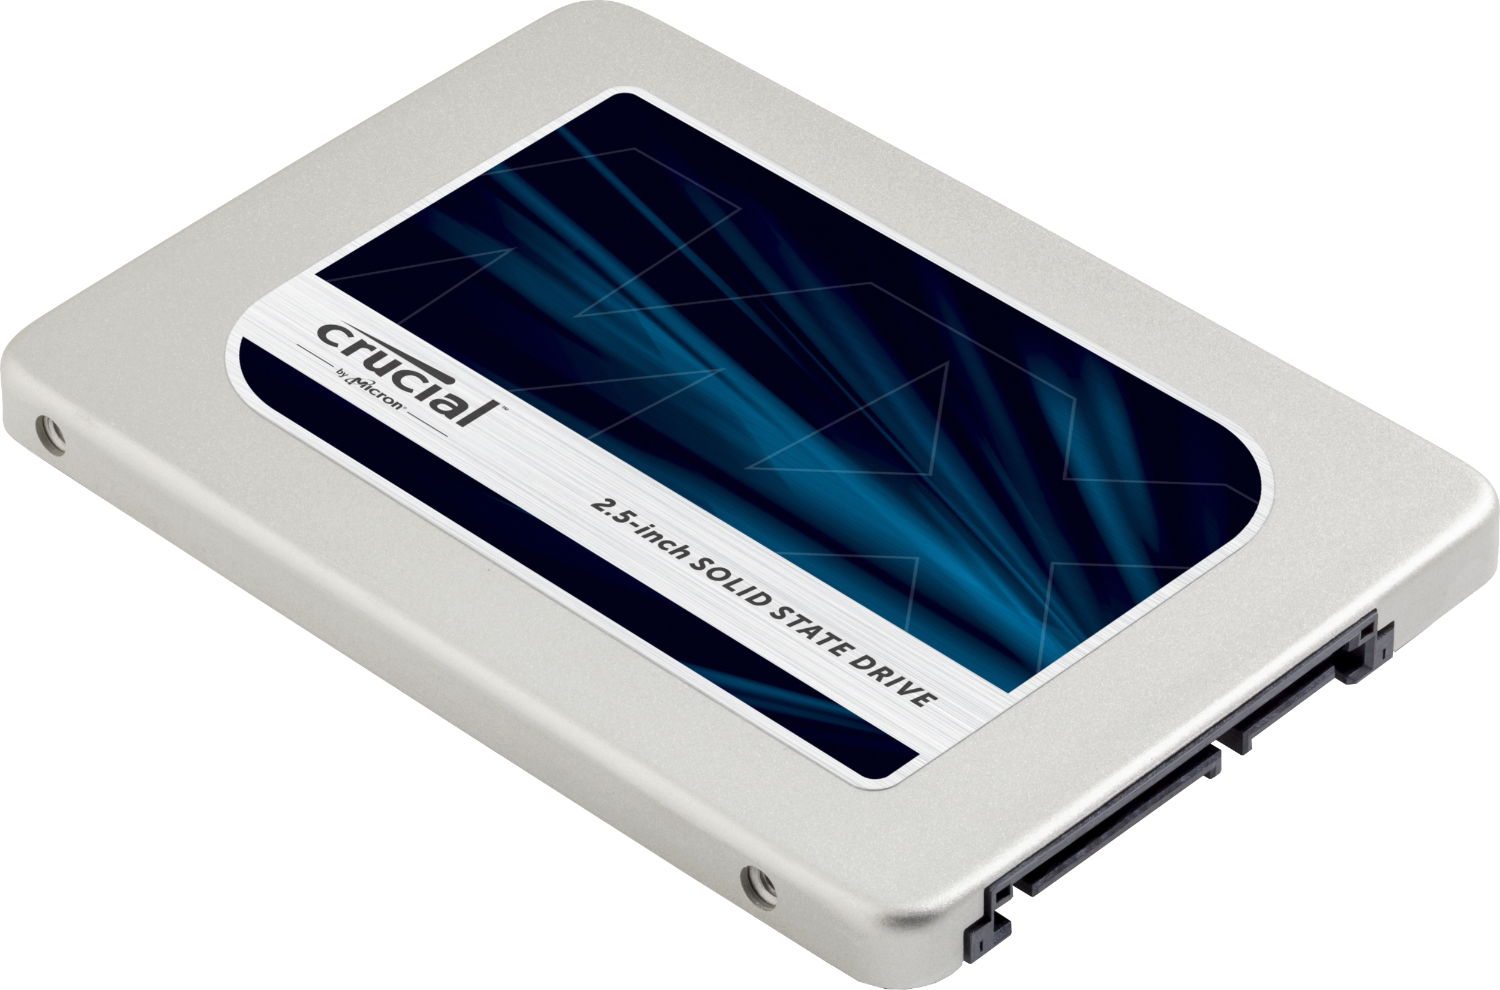 Crucial solid-state drive (SSD) for a computer isolated on a white background